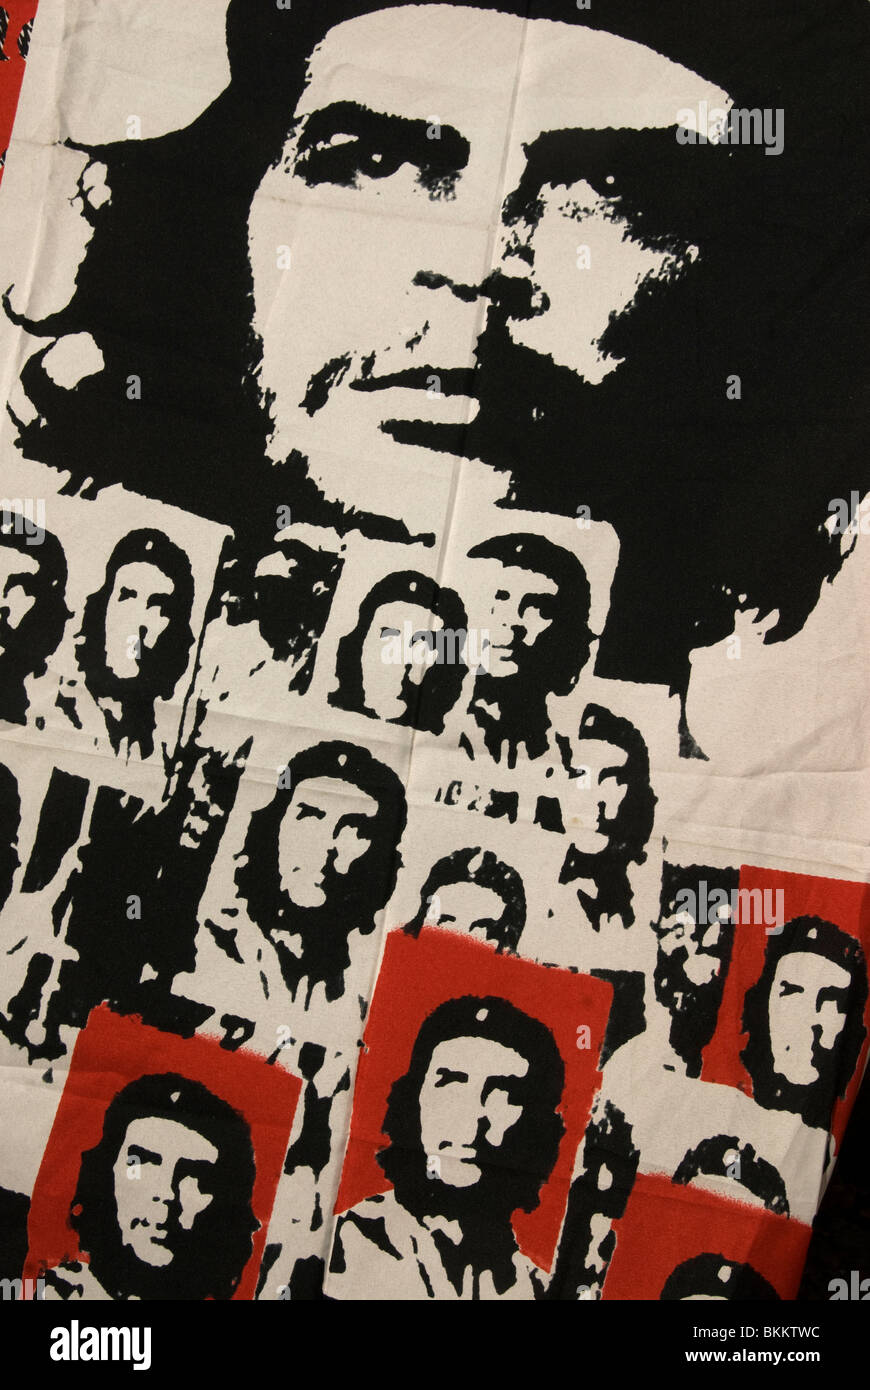 MayDay 2010. Che Guevara poster with multiple images using a photo by Alberto Korda - Stock Image